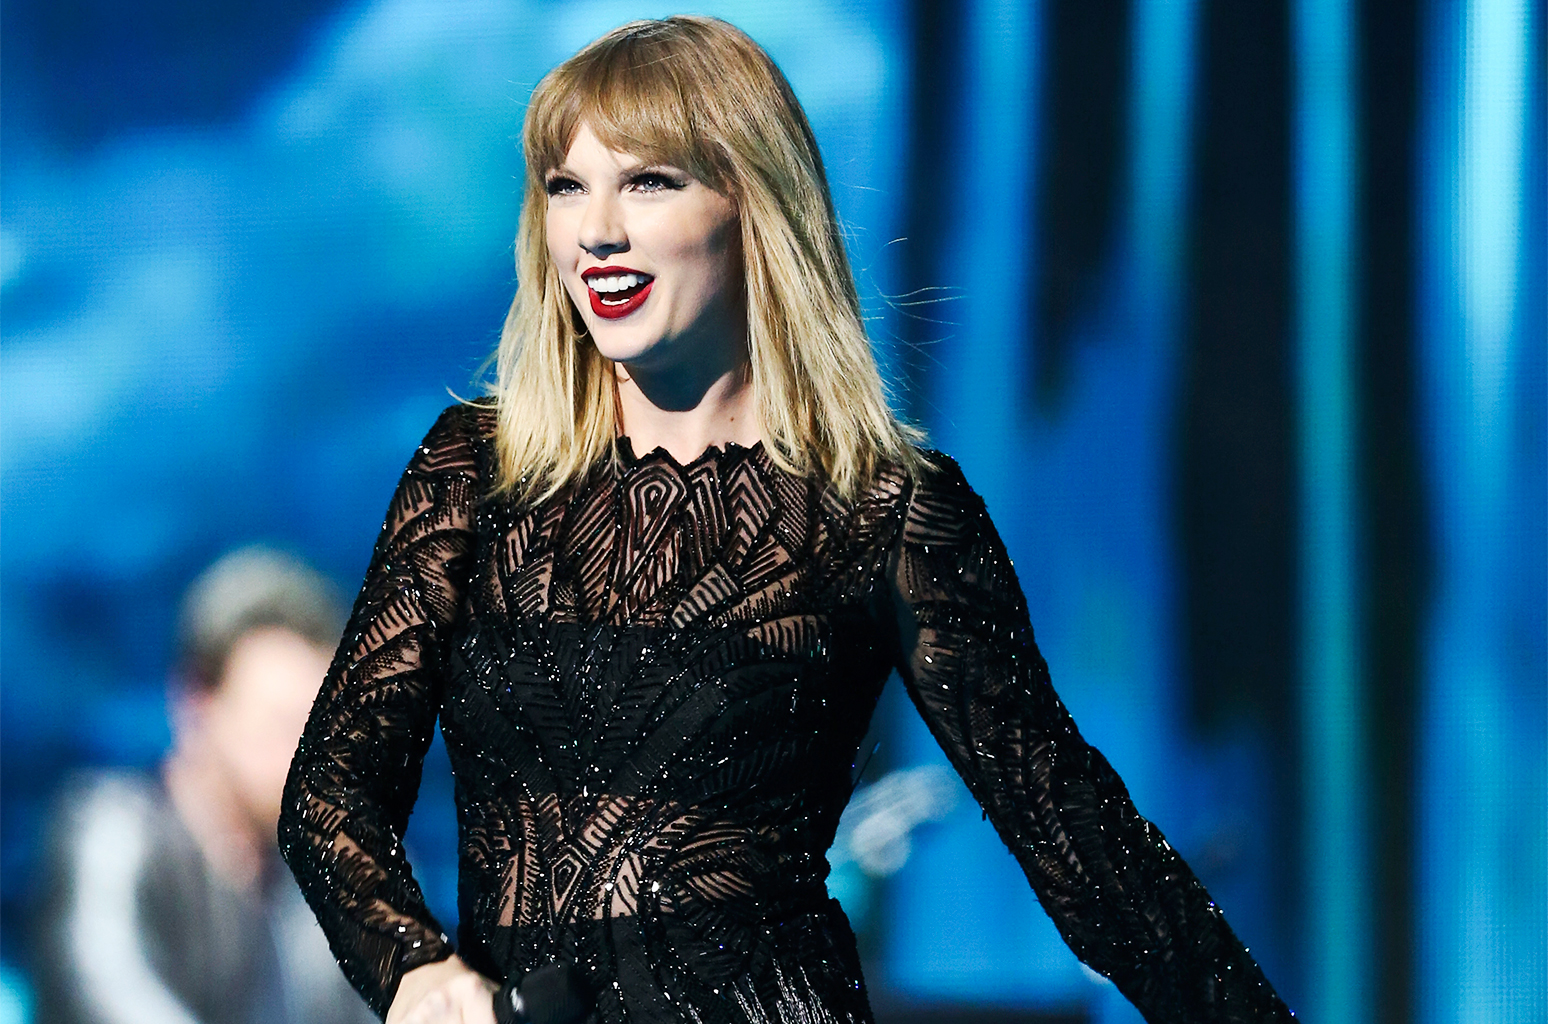 4 important things Taylor Swift said about sexual assault and harassment